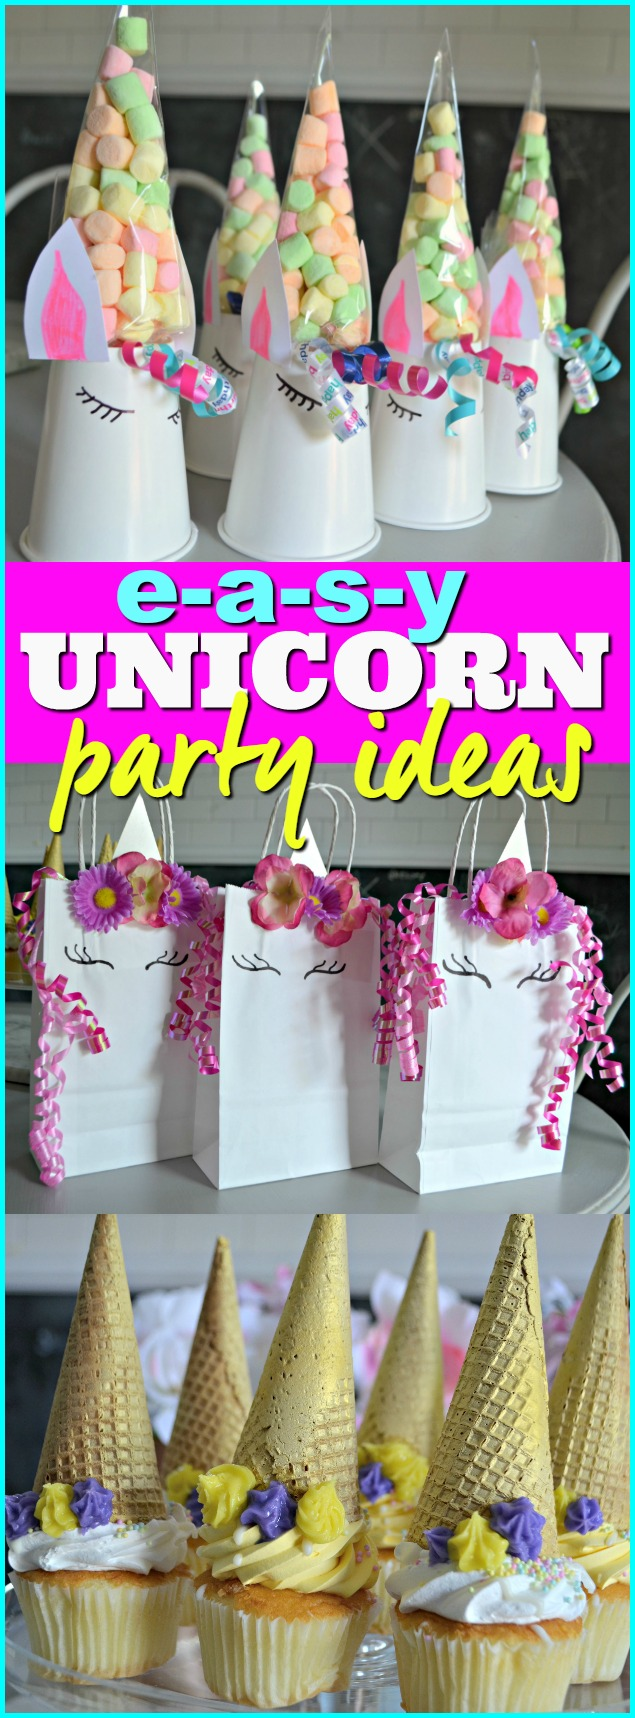 Make These 3 Frugal Cute And Easy Diy Unicorn Birthday Party Ideas Hip2save